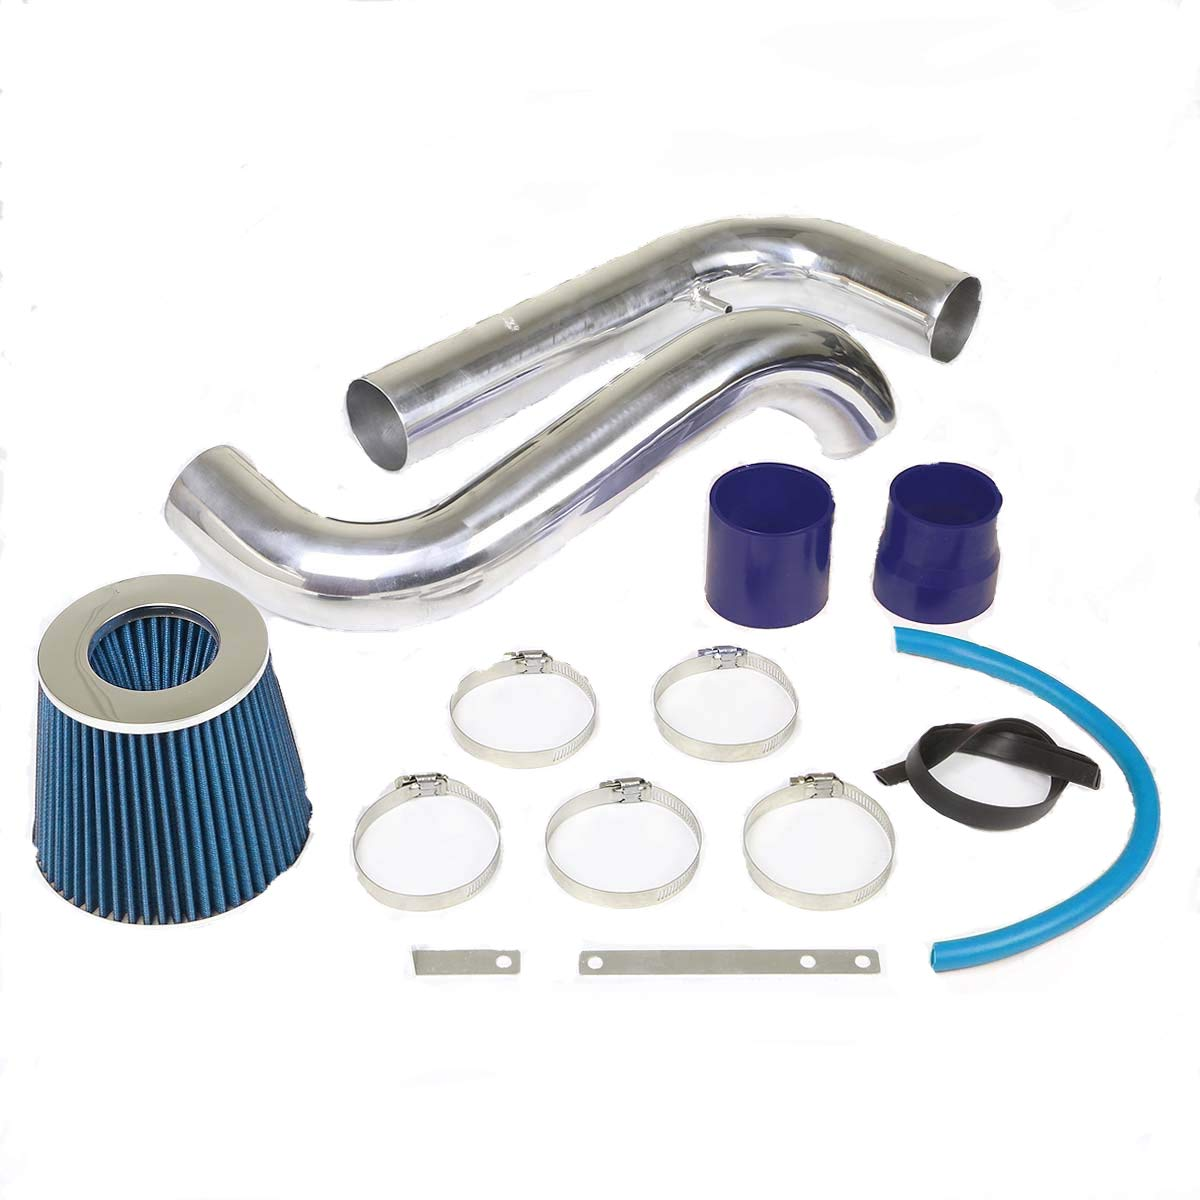 Blue 1994 1995 1996 1997 1998 1999 2000 2001 Acura Integra LS// RS// GS Short Ram Air Intake System with Filter